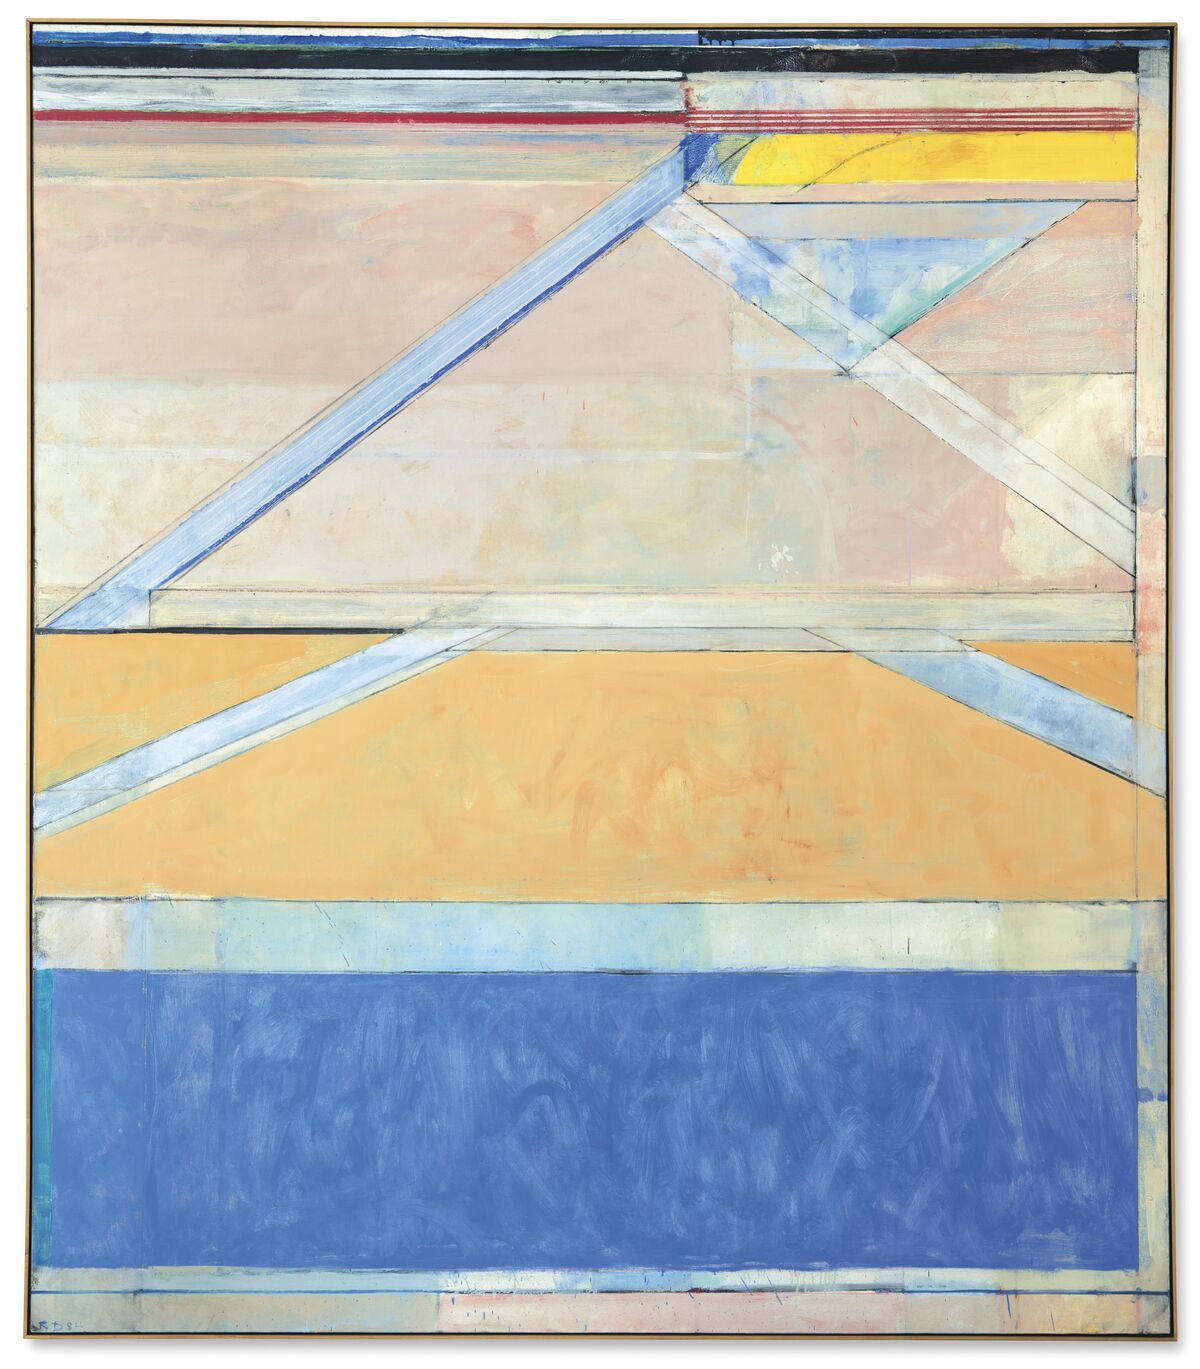 Richard Diebenkorn, Ocean Park #126, 1984. Courtesy of Christie's.